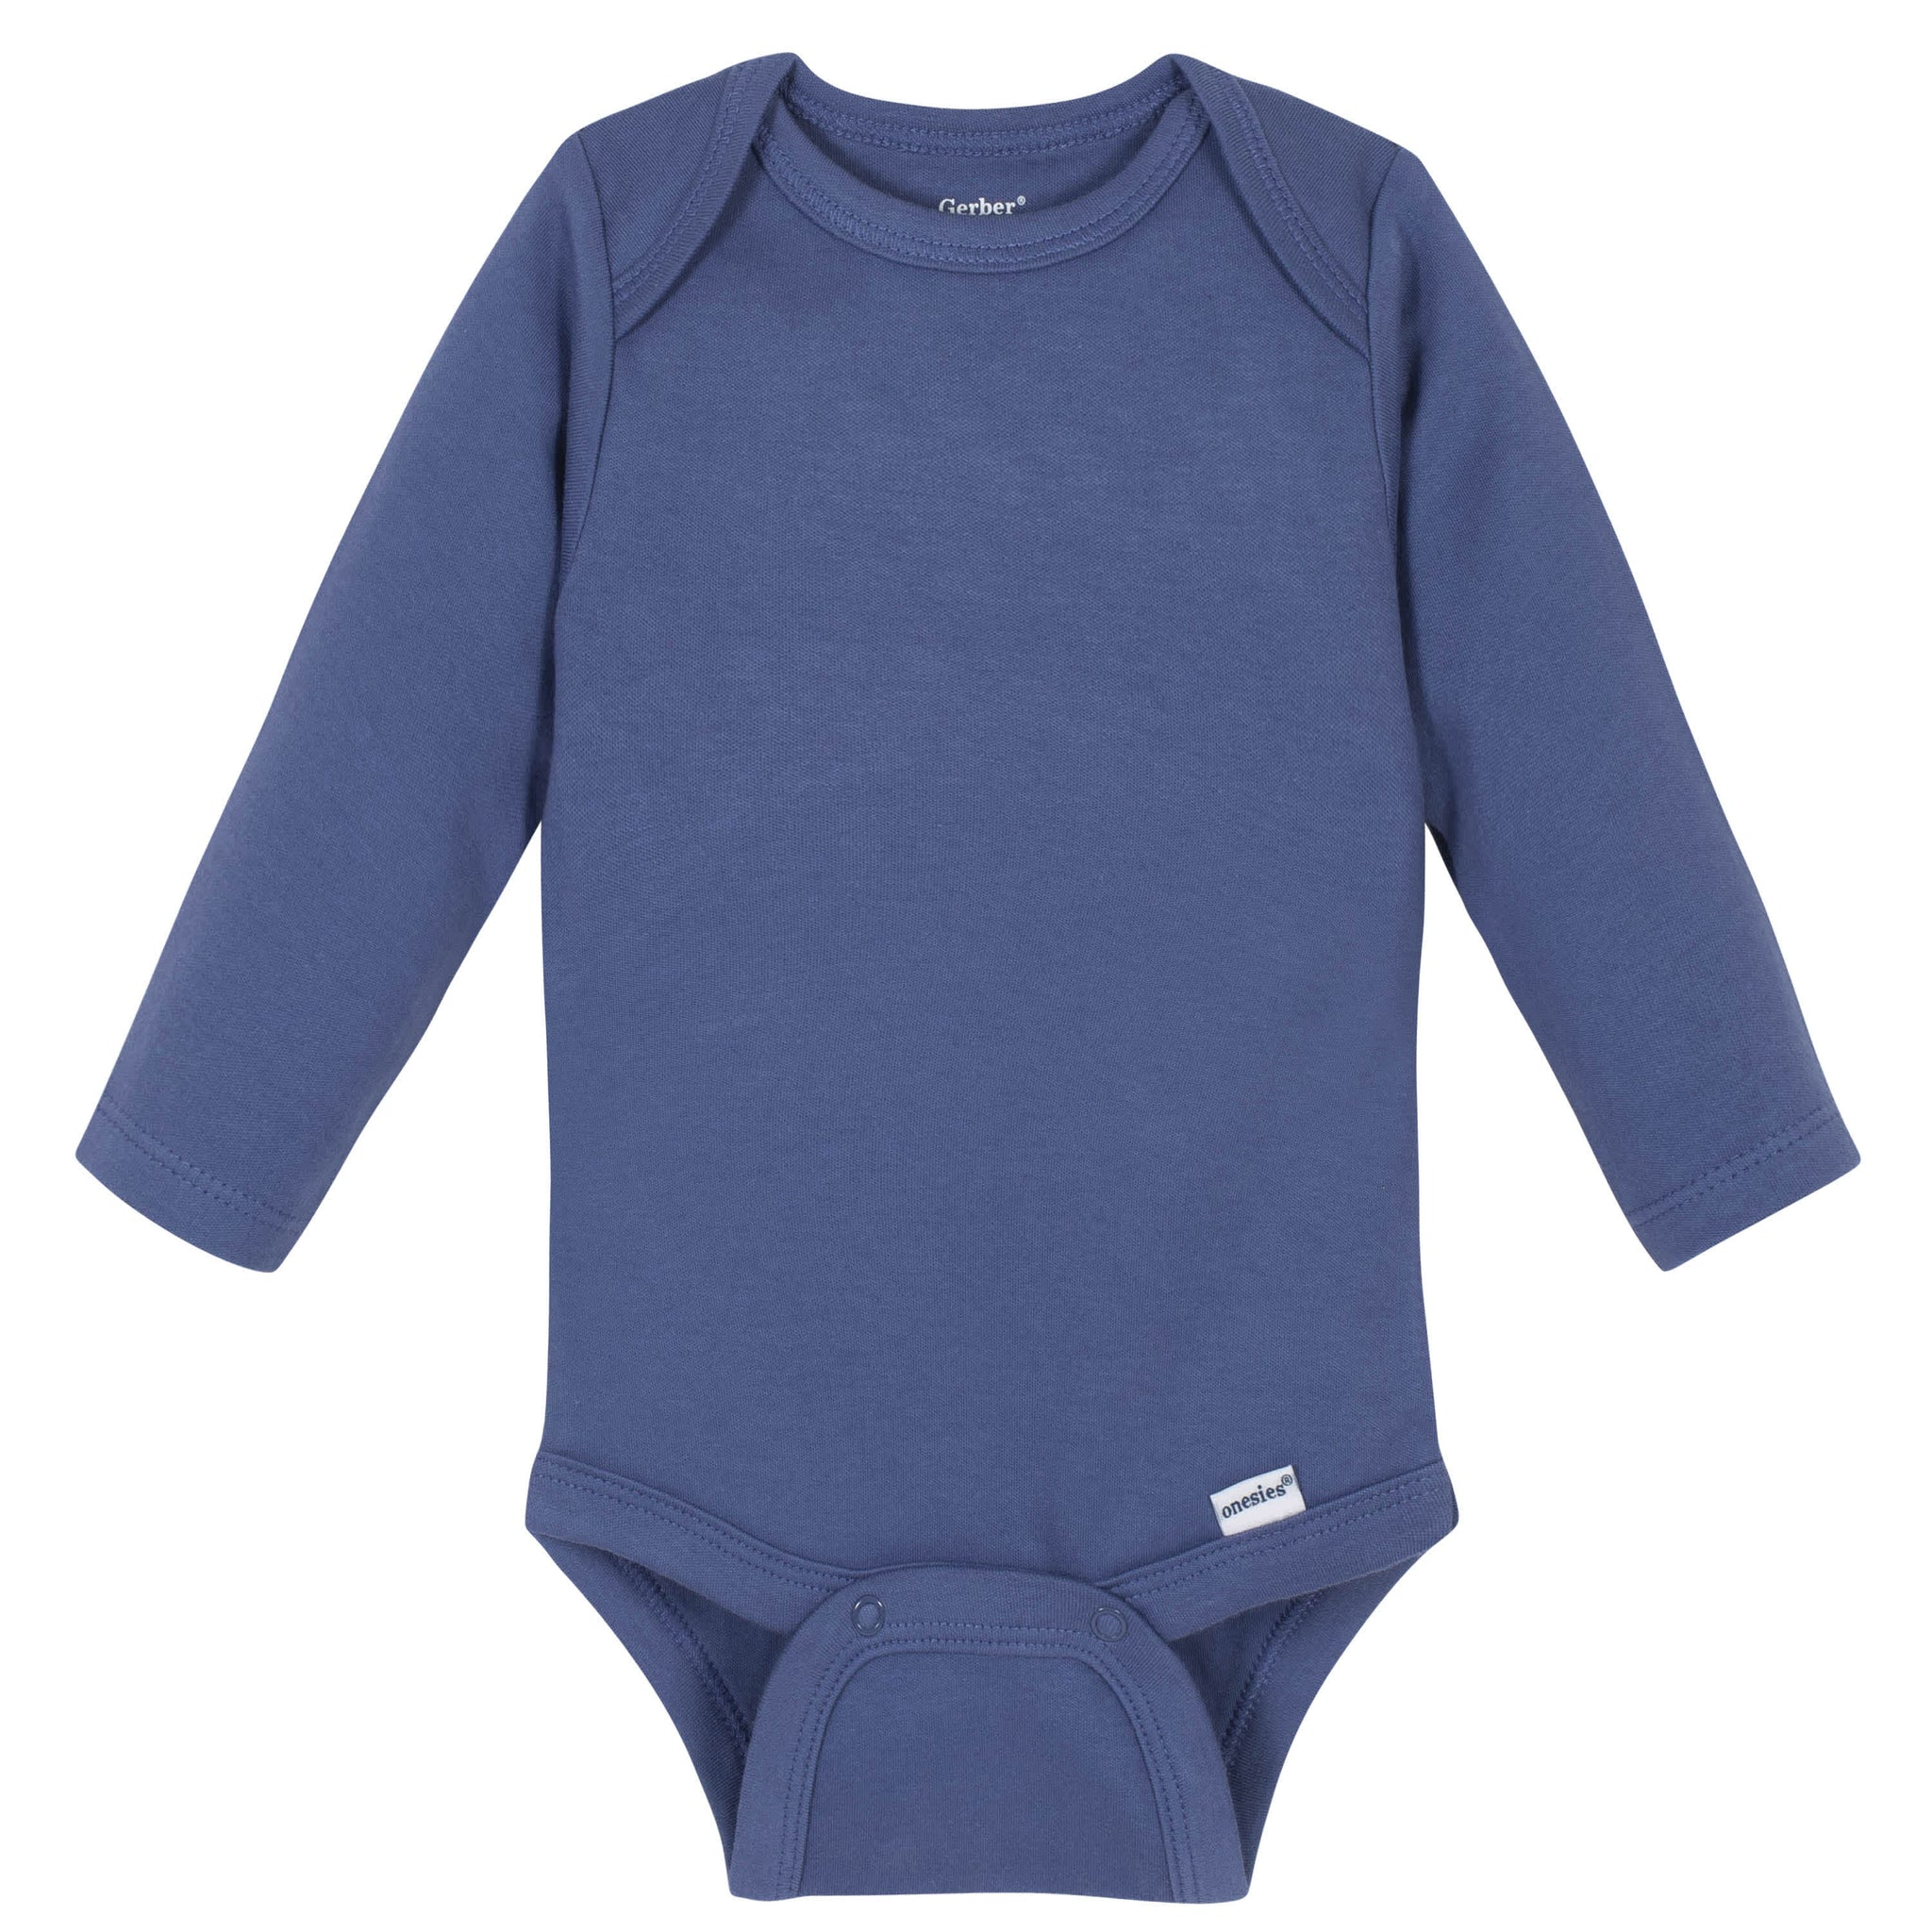 Gerber® Premium Blue Long Sleeve Onesies® Brand Bodysuit - 10 Colors Available